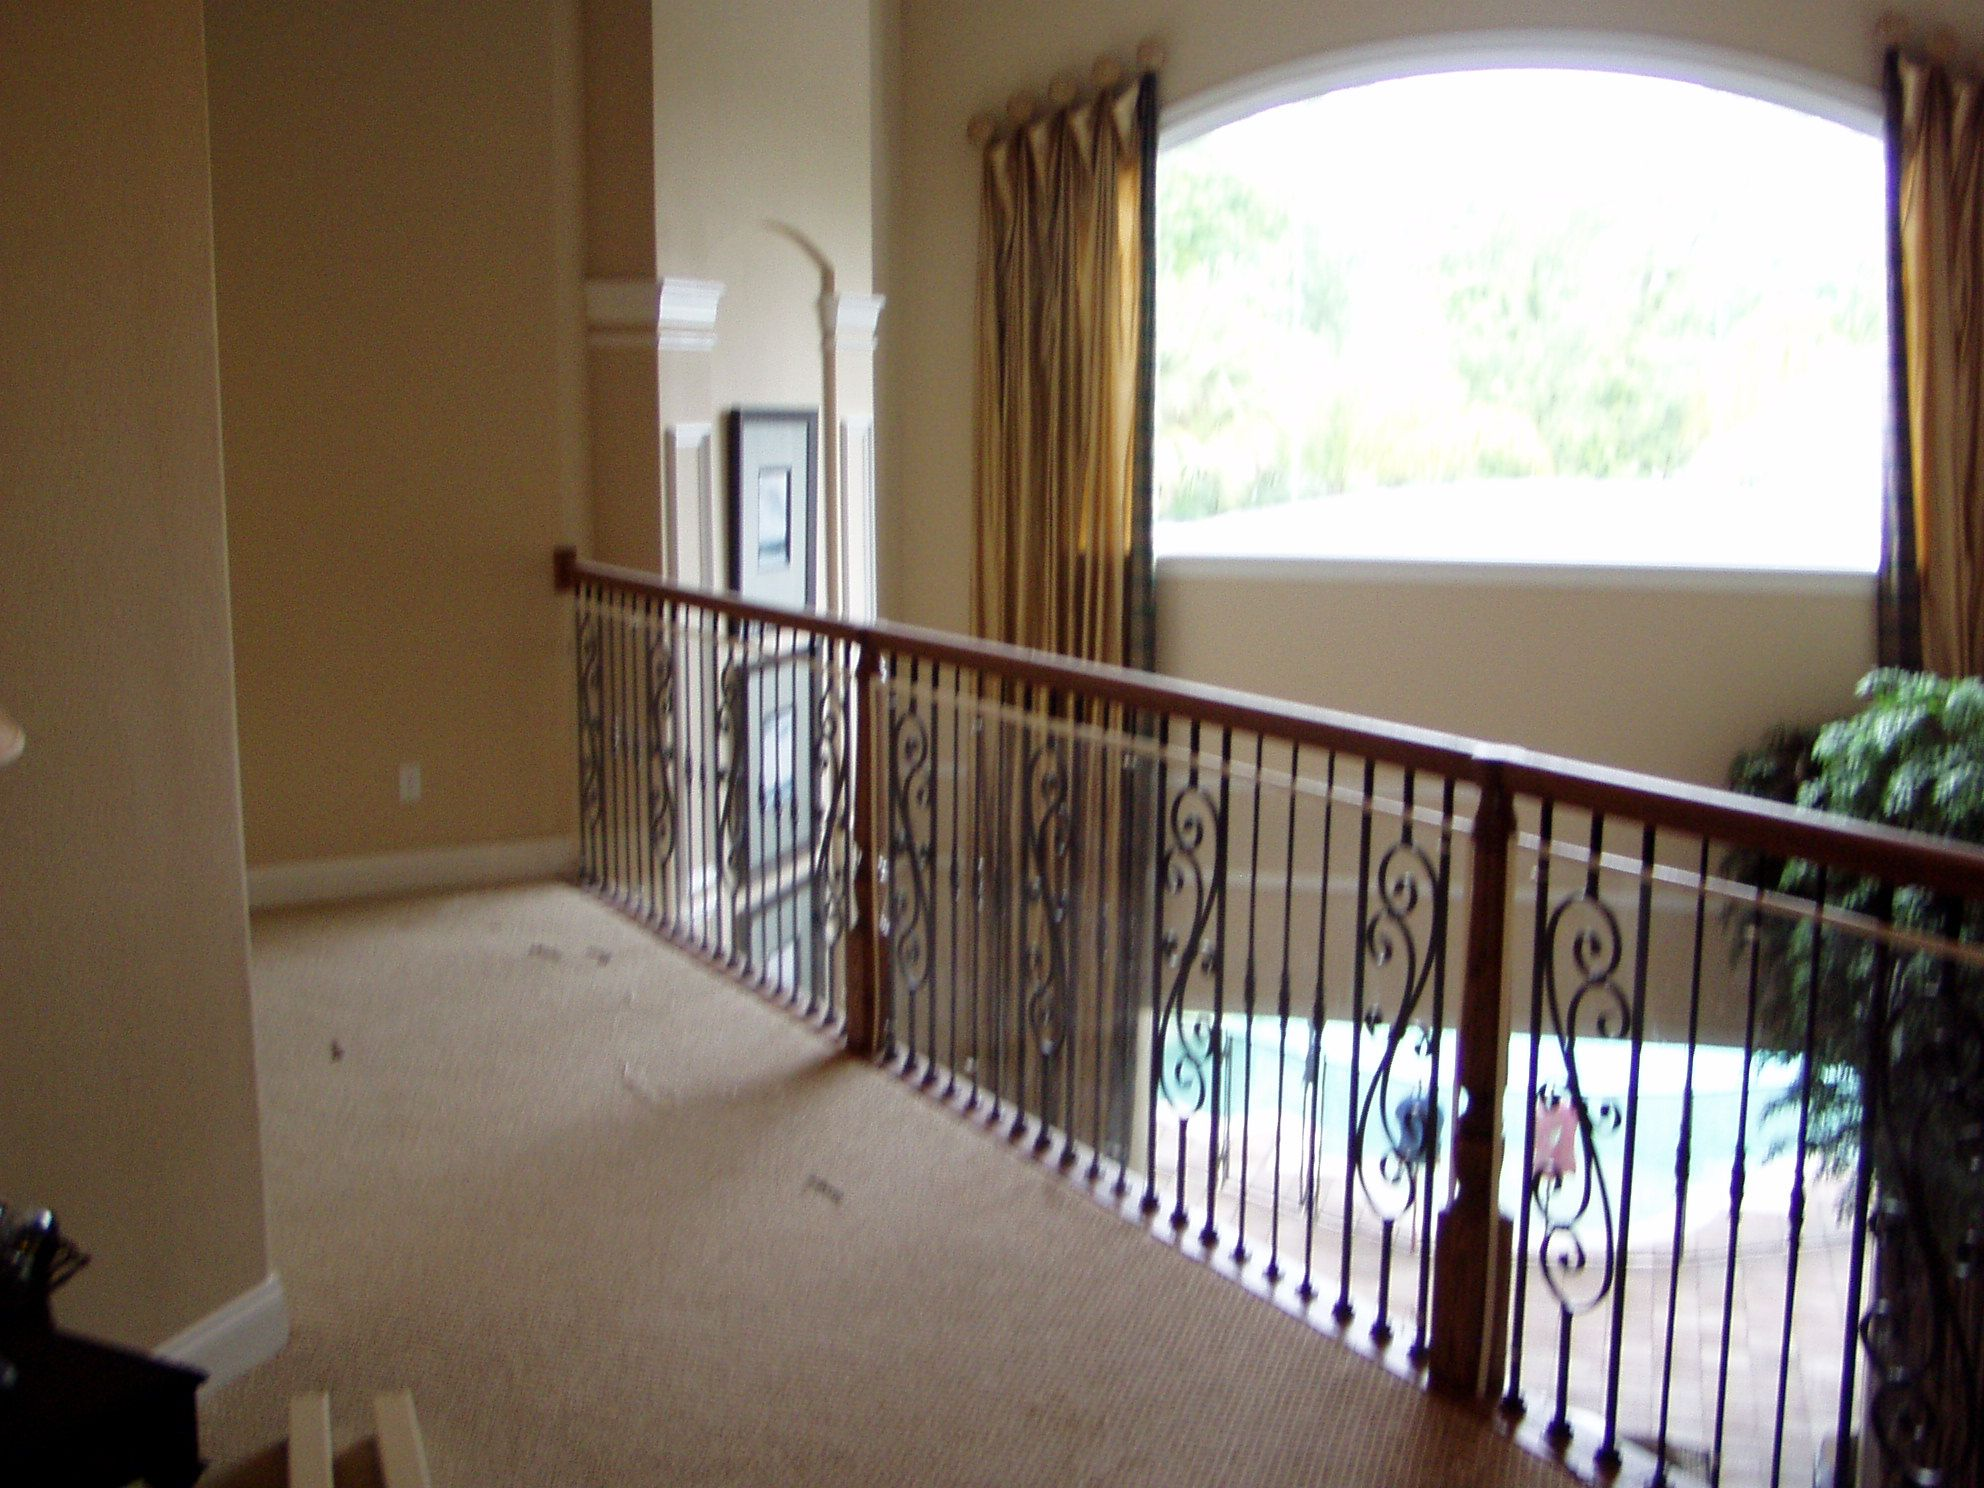 Banister Safety, Before Safety Wall French doors, Baby